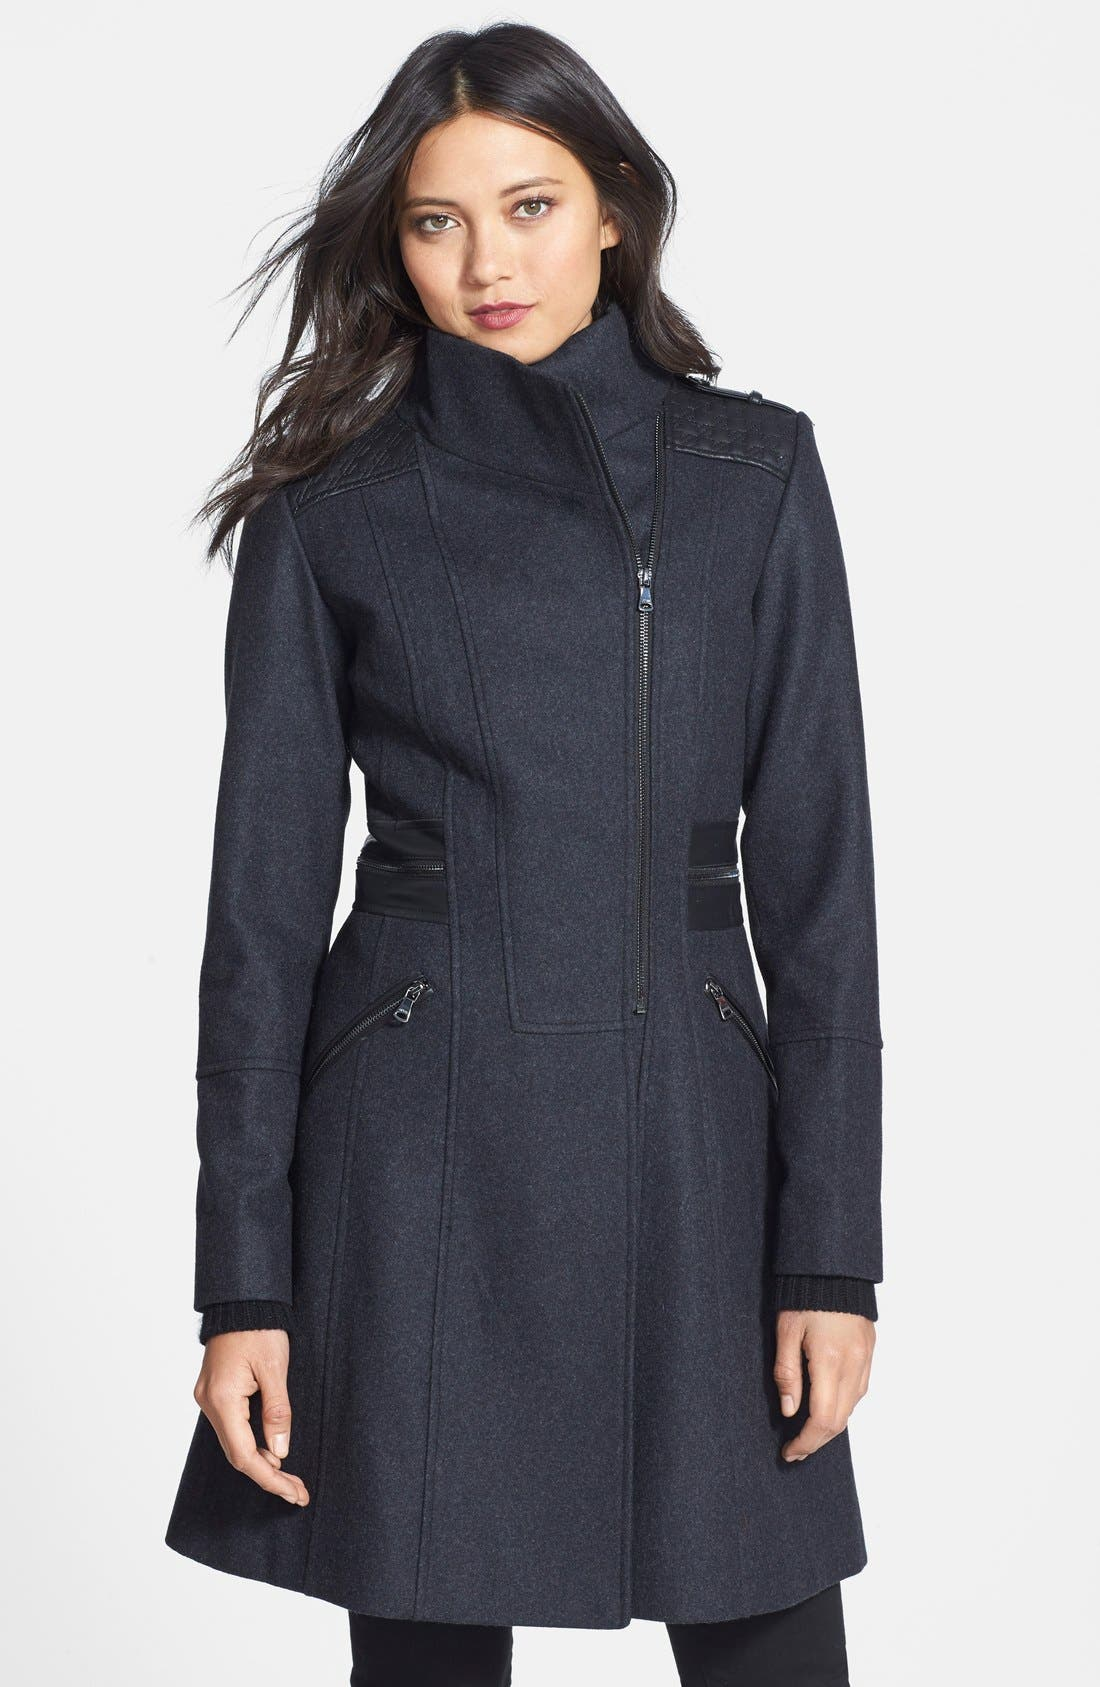 Main Image - GUESS Faux Leather Trim Stand Collar Wool Blend Coat